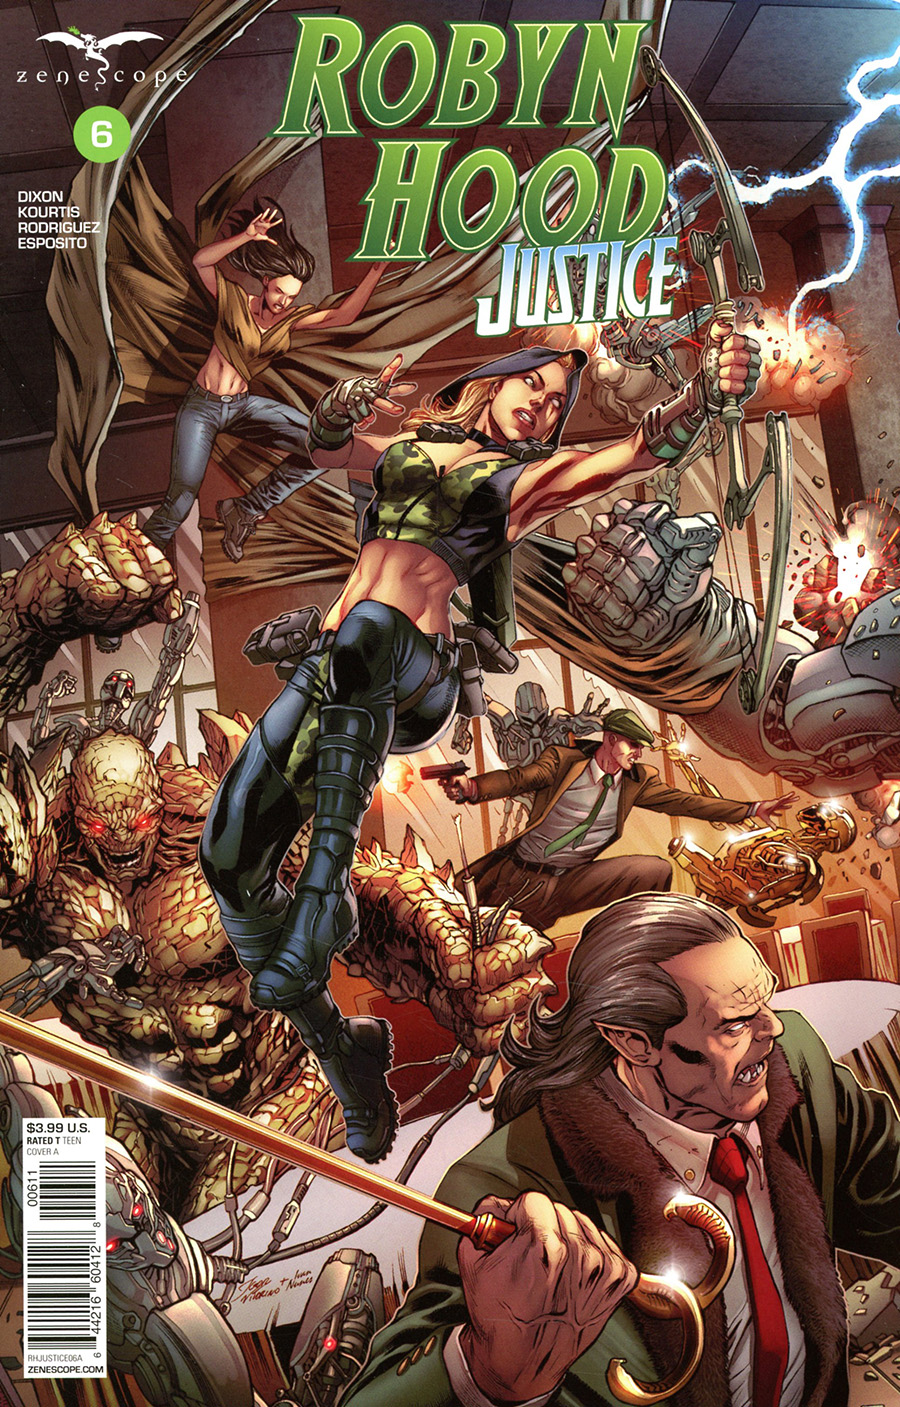 Grimm Fairy Tales Presents Robyn Hood Justice #6 Cover A Igor Vitorino Connecting